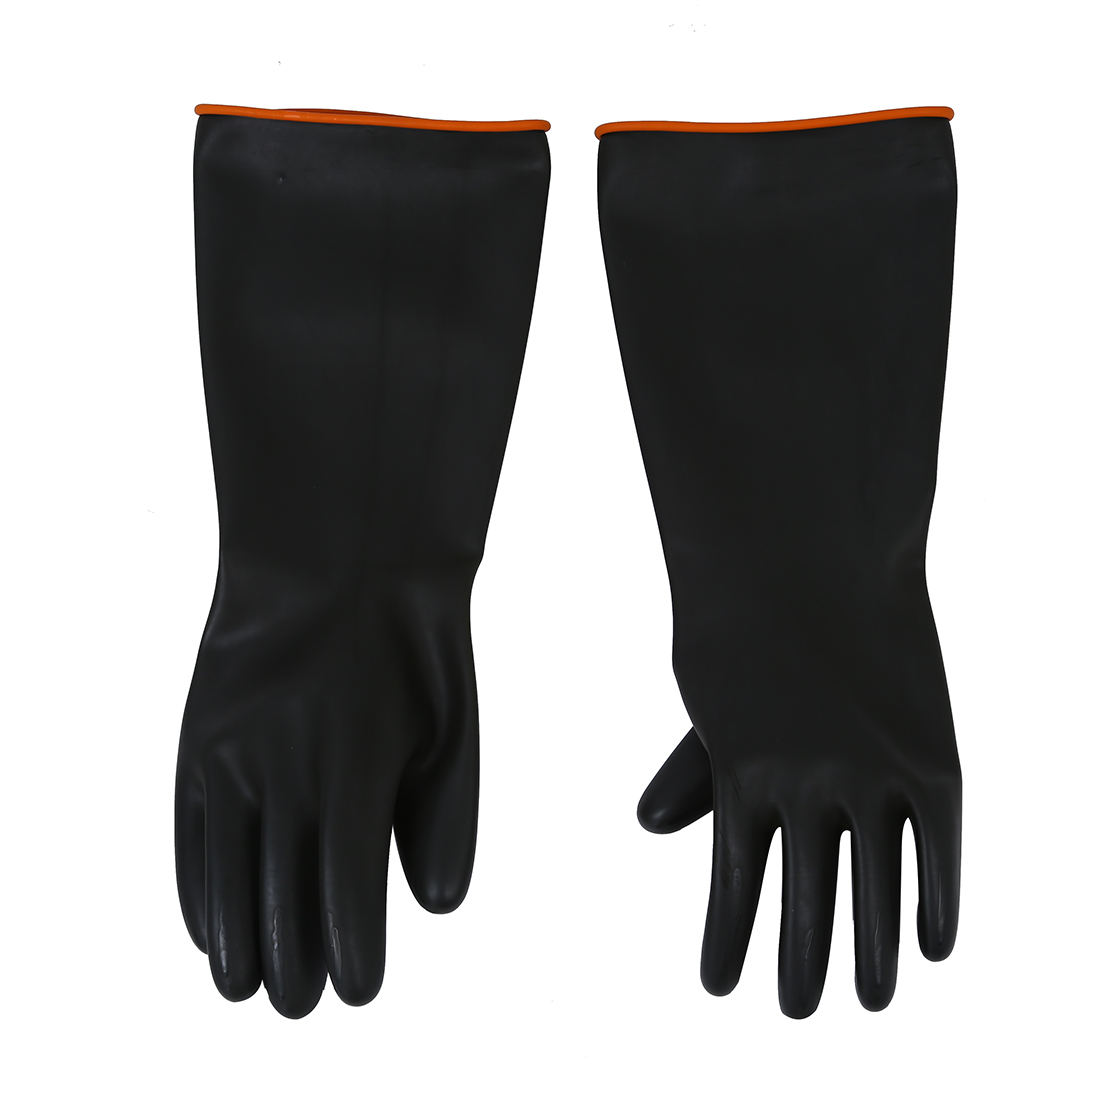 MOOL Pair Chemical Resistance Industry Elbow Long Rubber Gloves 18